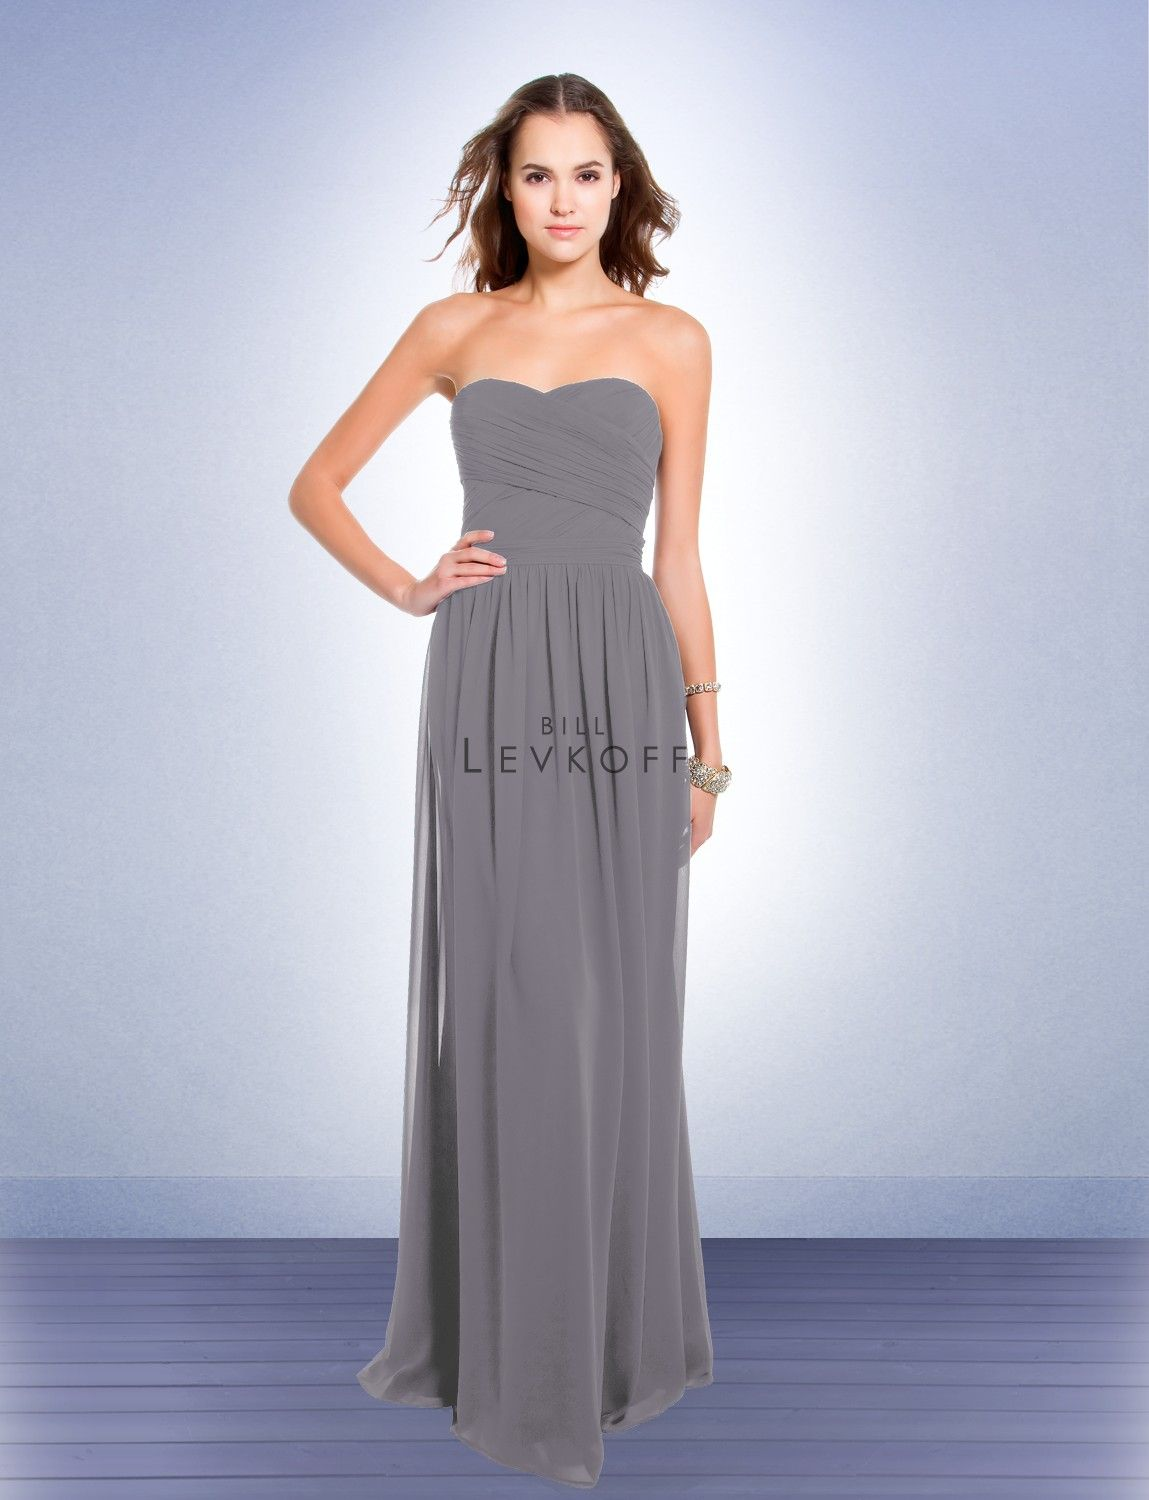 c80a2816832 Bill Levkoff in Pewter - Bridesmaid Dress Style 193